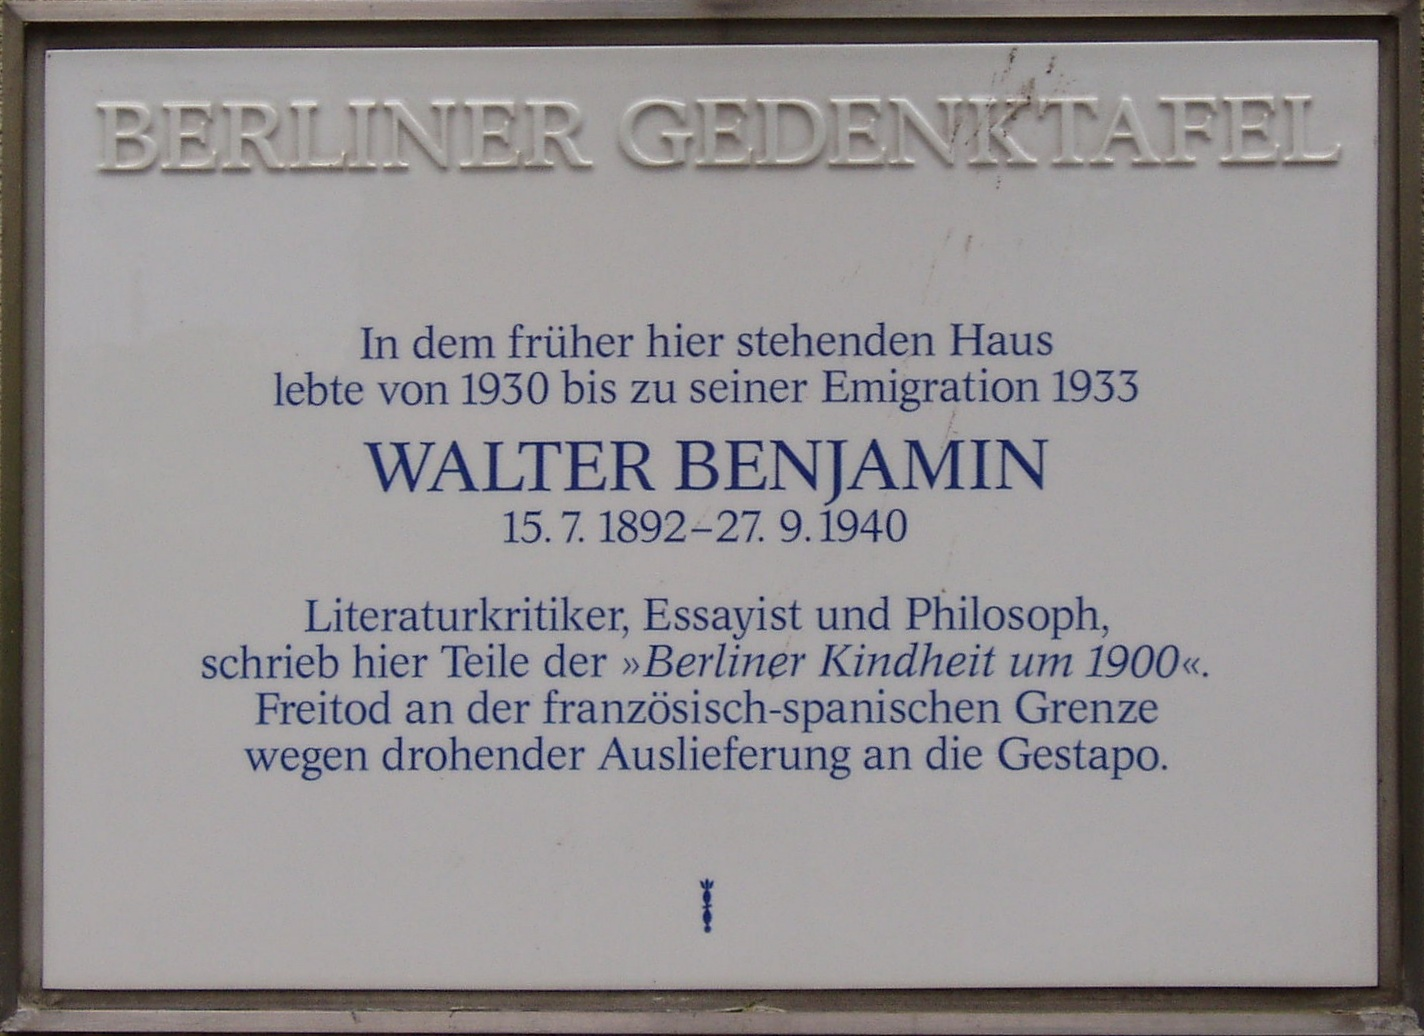 walter benjamin essay on collecting